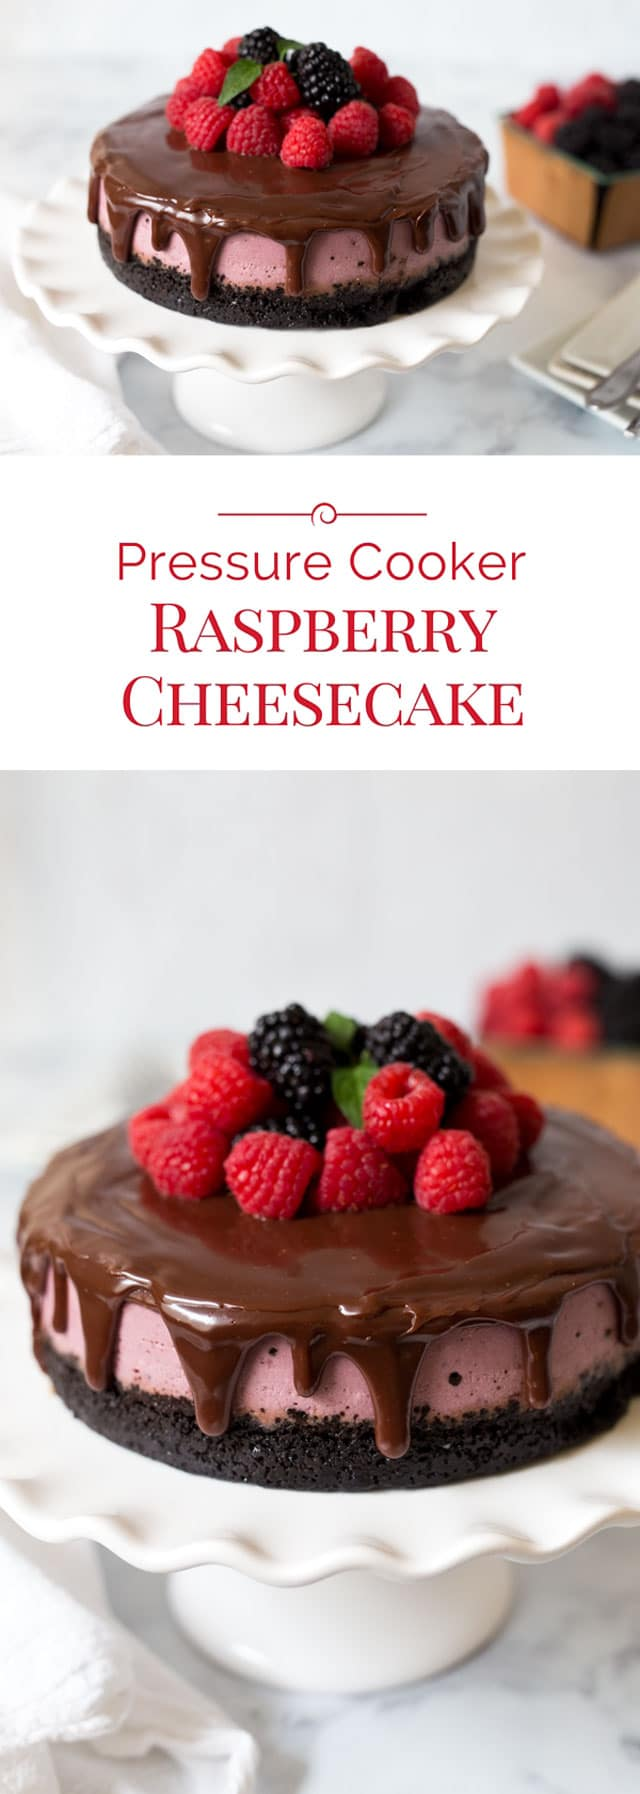 This colorful Pressure Cooker Raspberry Cheesecake has an Oreo cookie crust covered with rich chocolate ganache and crowned with fresh raspberries and blackberries. It's easy to make a creamy cheesecake in an Instant Pot. #pressurecooker #instantpot #cheesecake #dessert #pressurecooking via @PressureCook2da